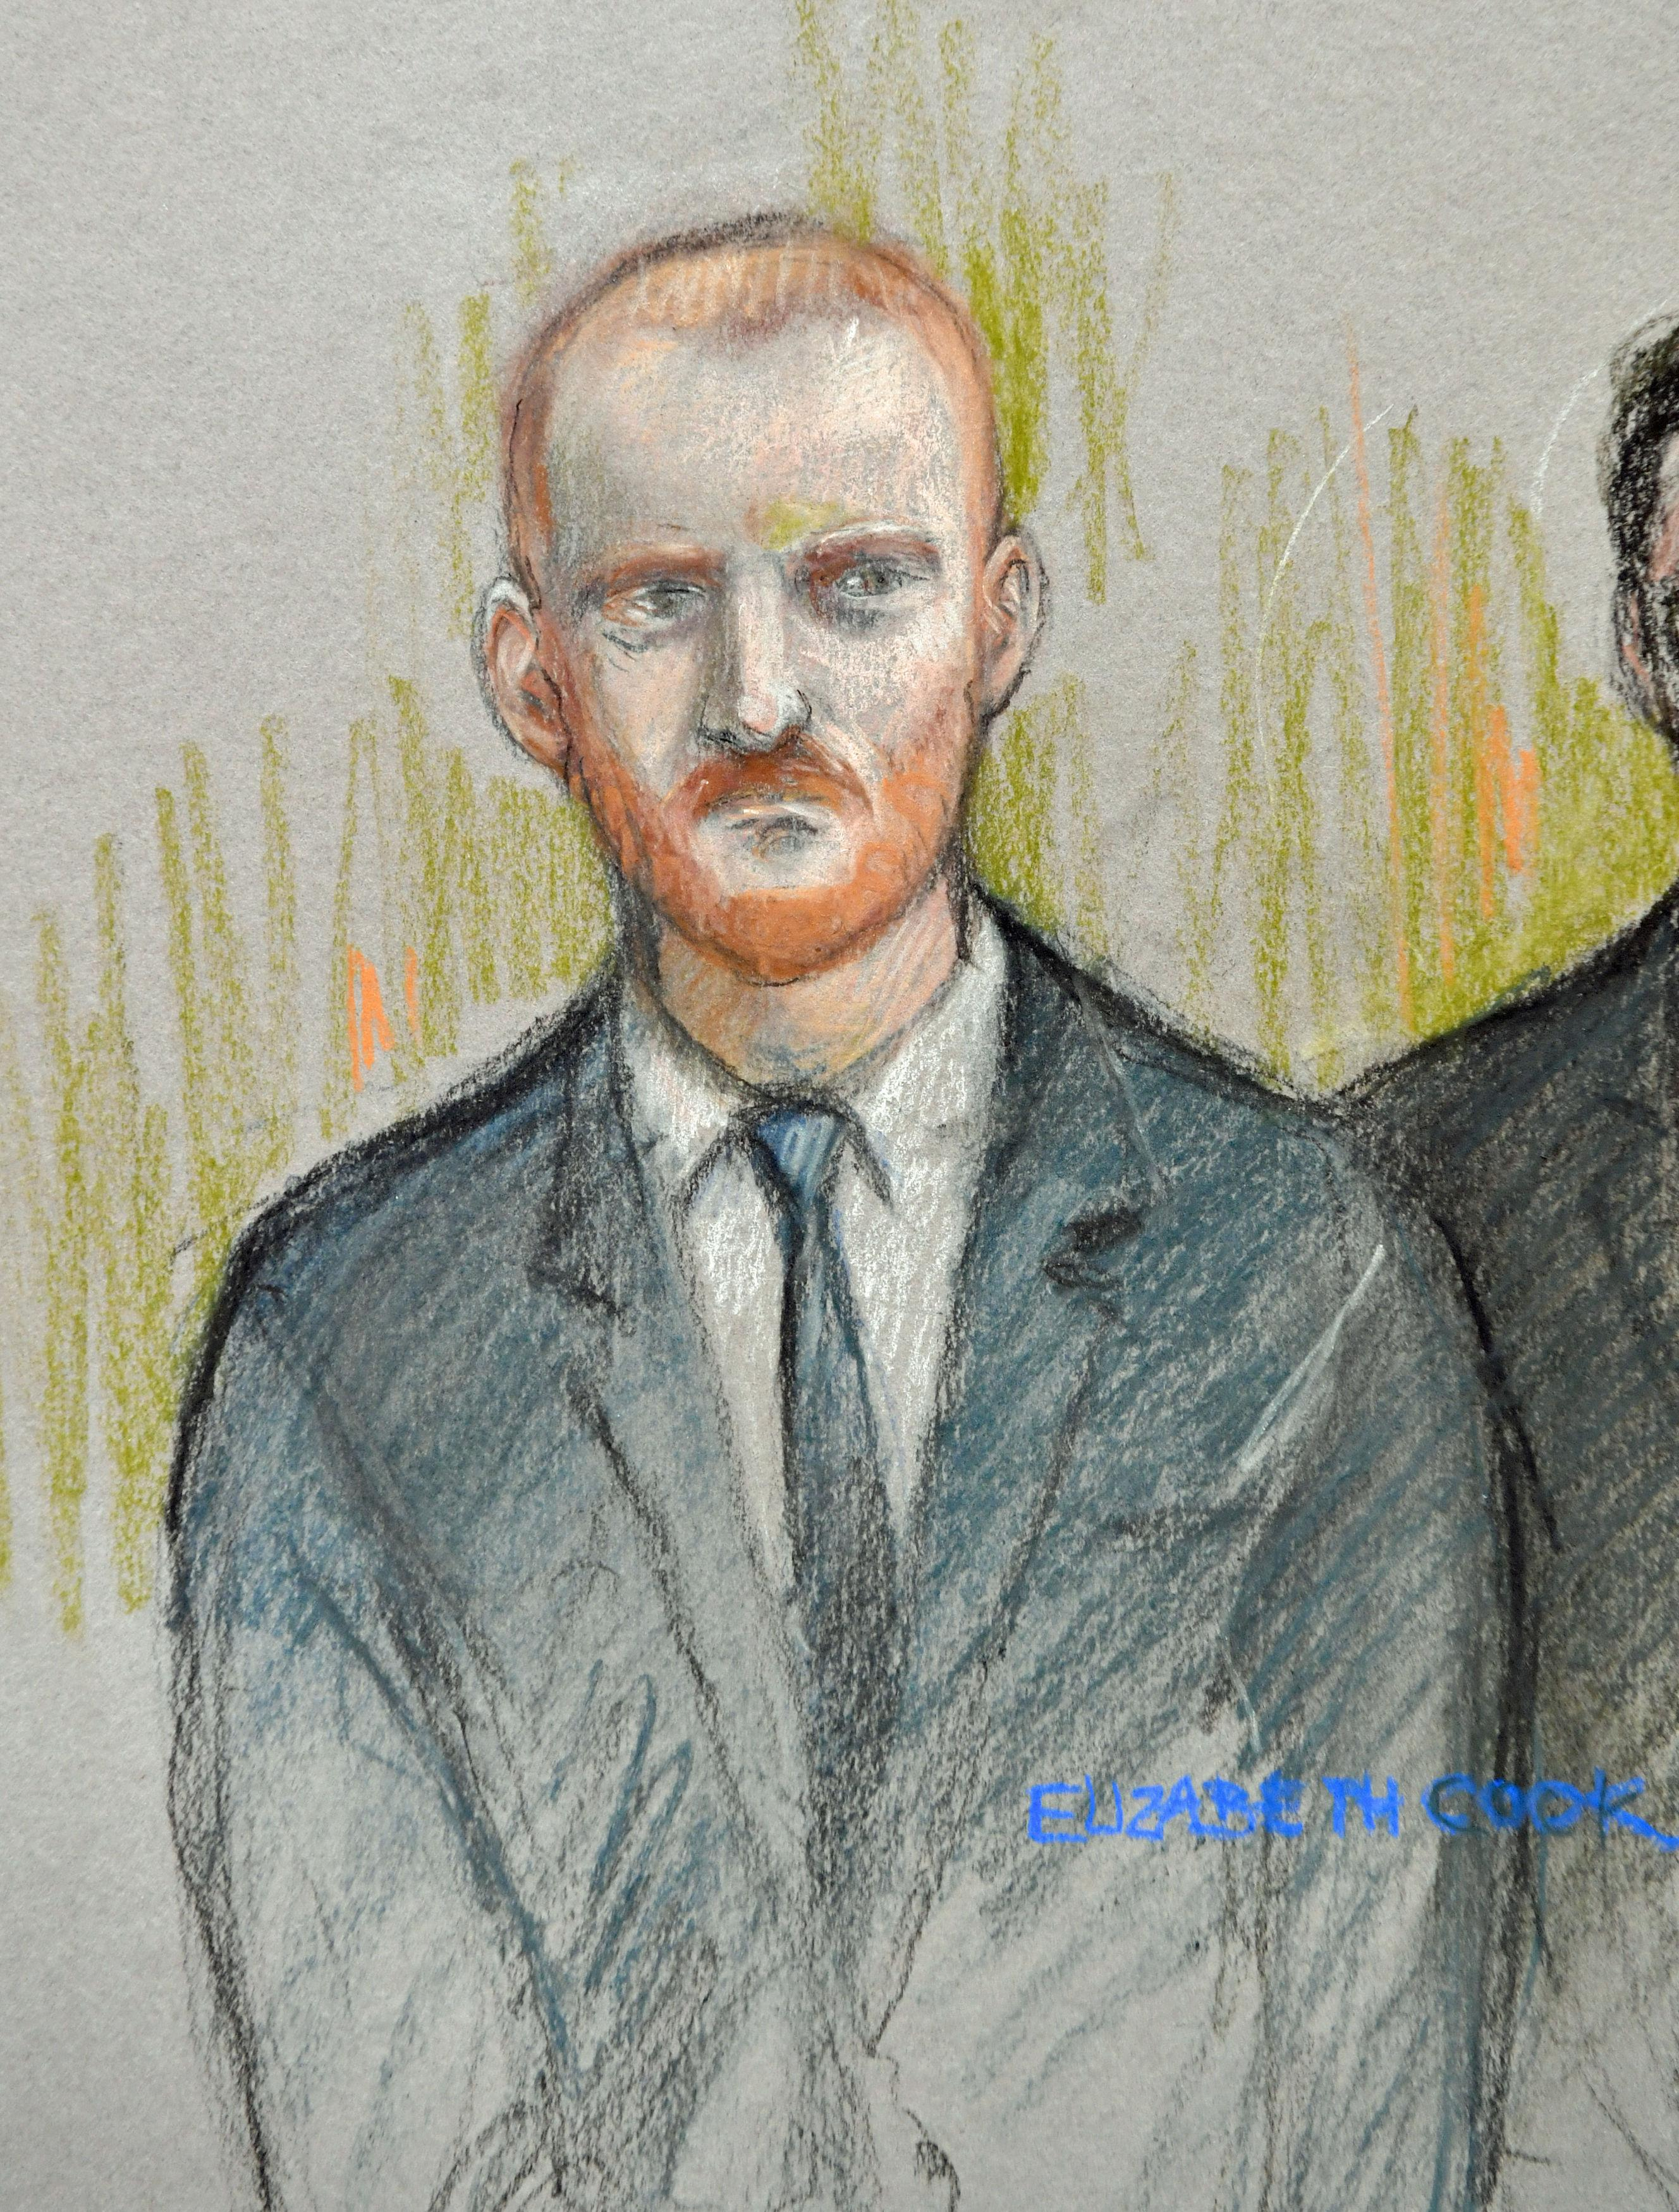 Ben Stokes appeared in court via video link from New Zealand